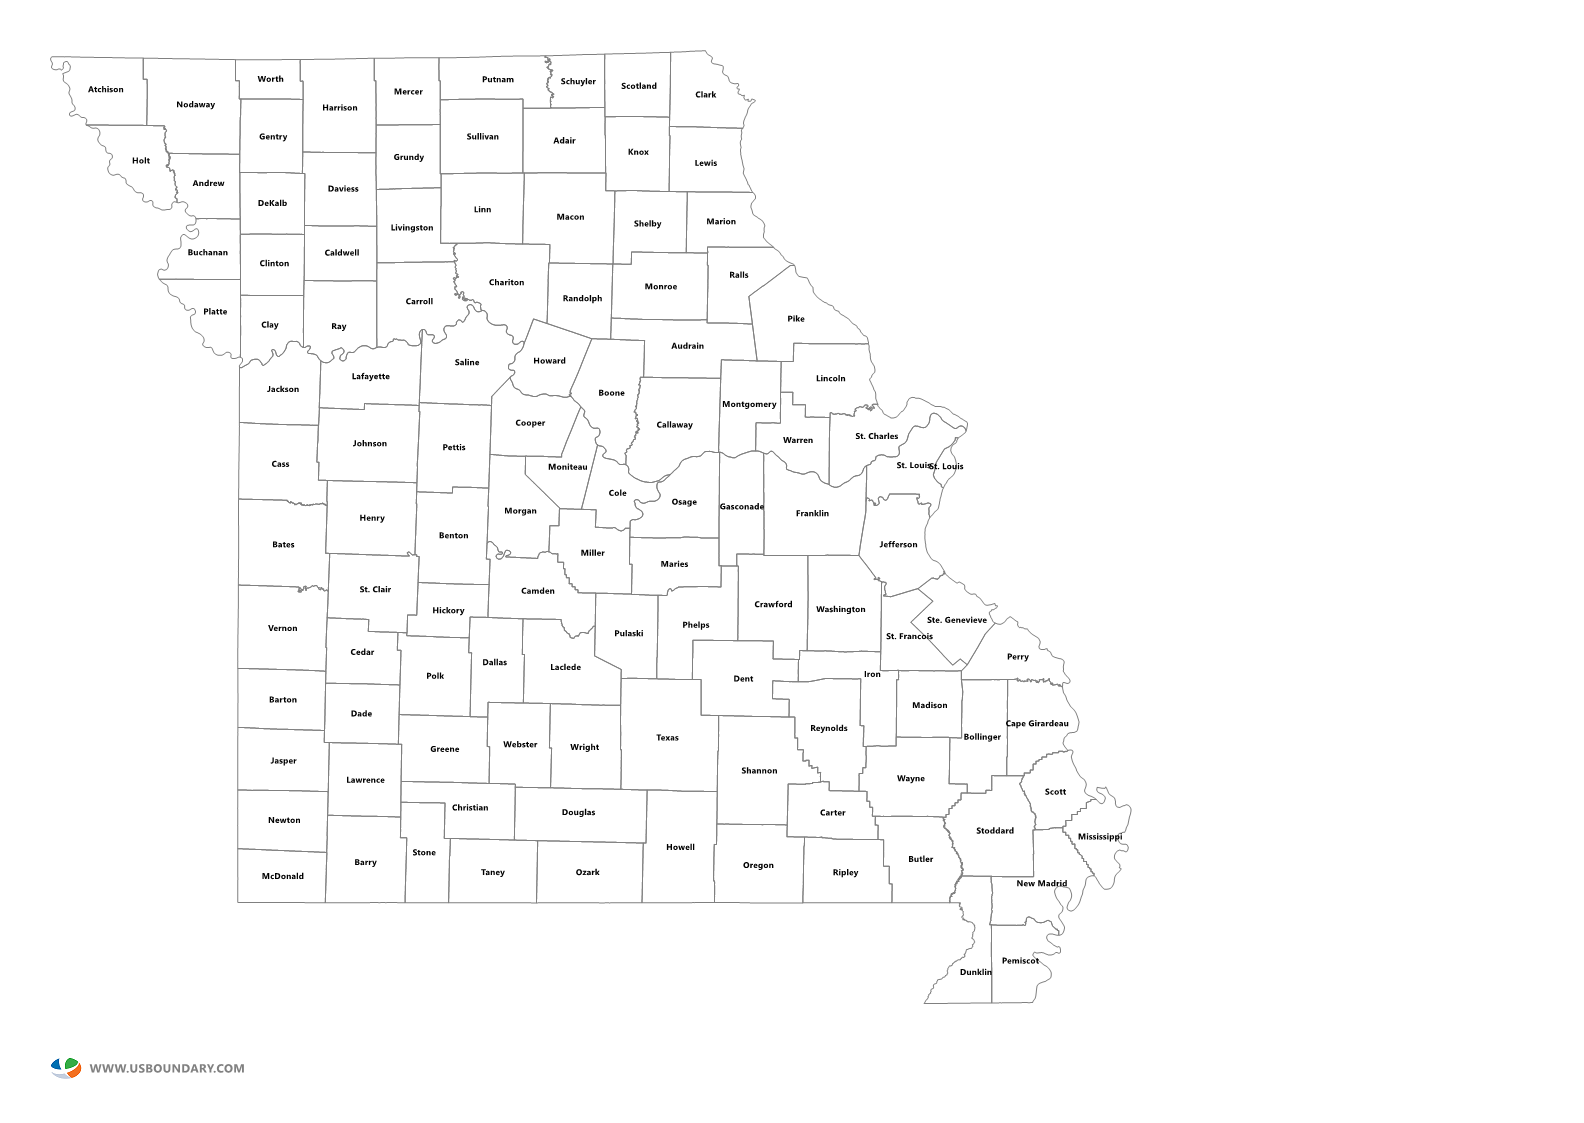 State Counties Maps Download - Missouri county map